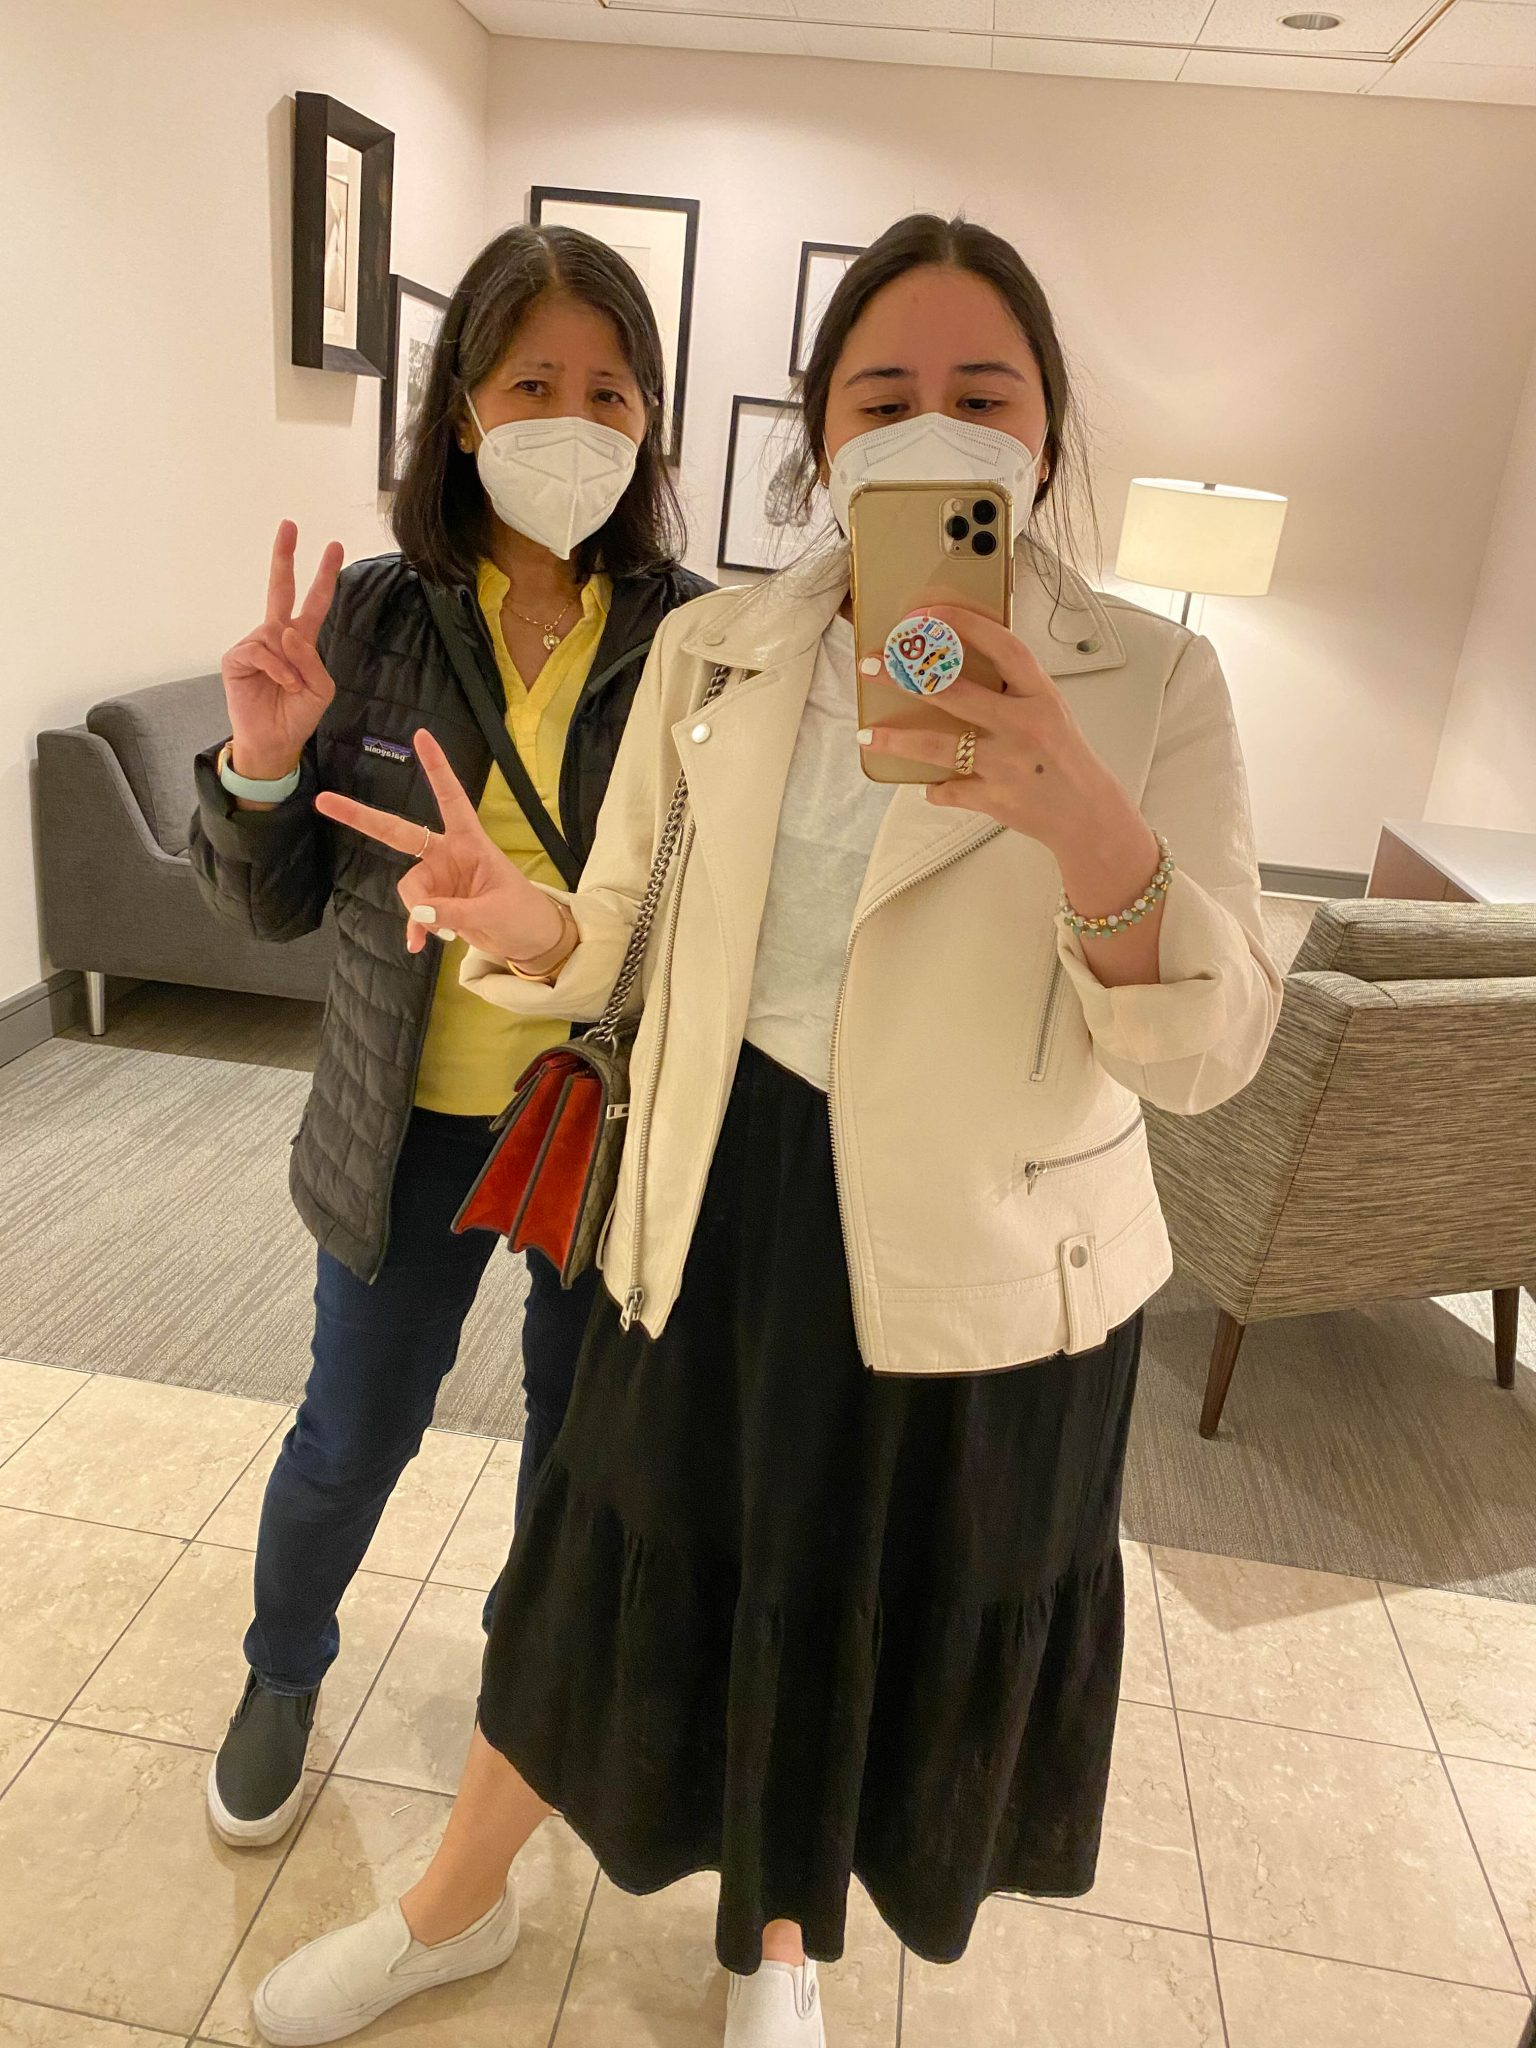 Life Lately July 2021 by Basically A Mess (photo of two women in Garden State Mall)